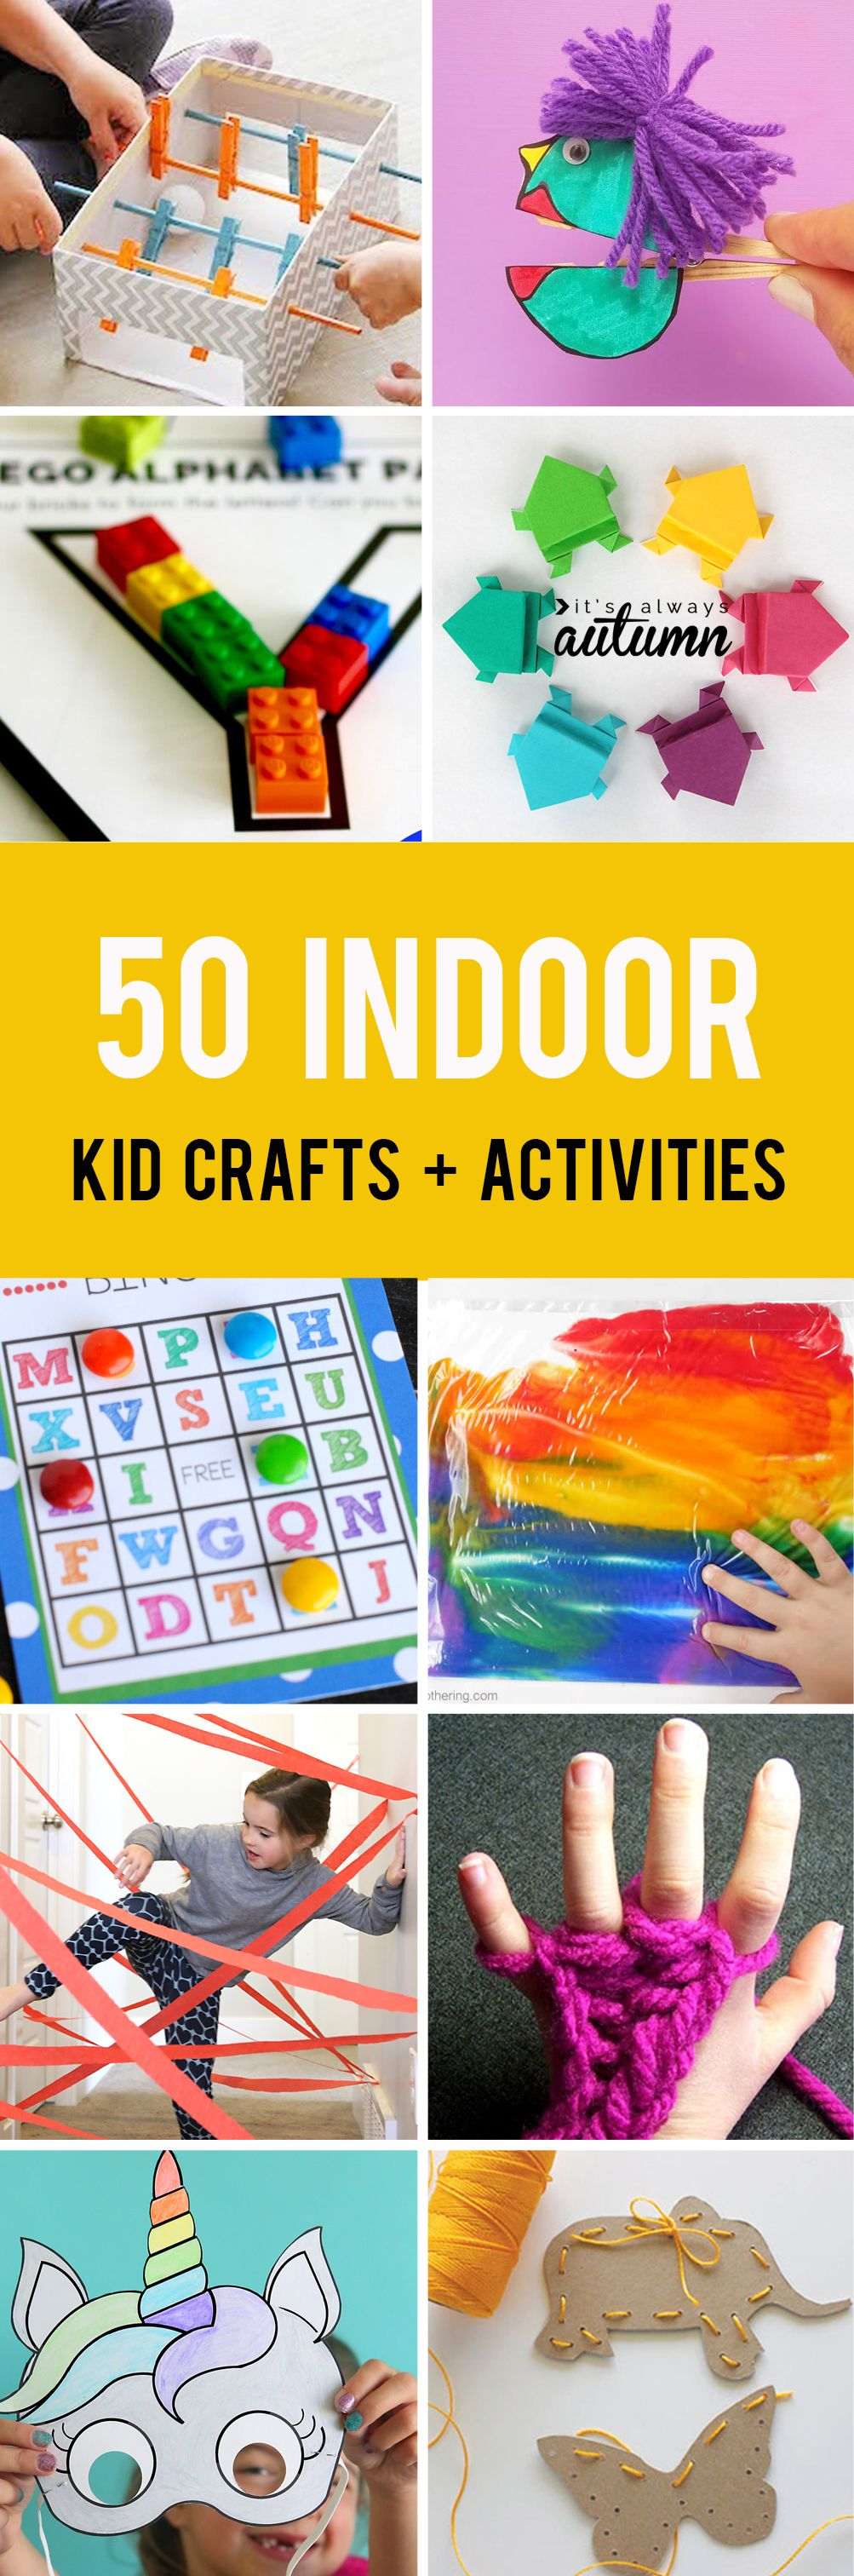 50 easy crafts and activities kids can do indoors! Perfect for cold or rainy days. #itsalwaysautumn #kidactivities #kidcrafts #funforkids